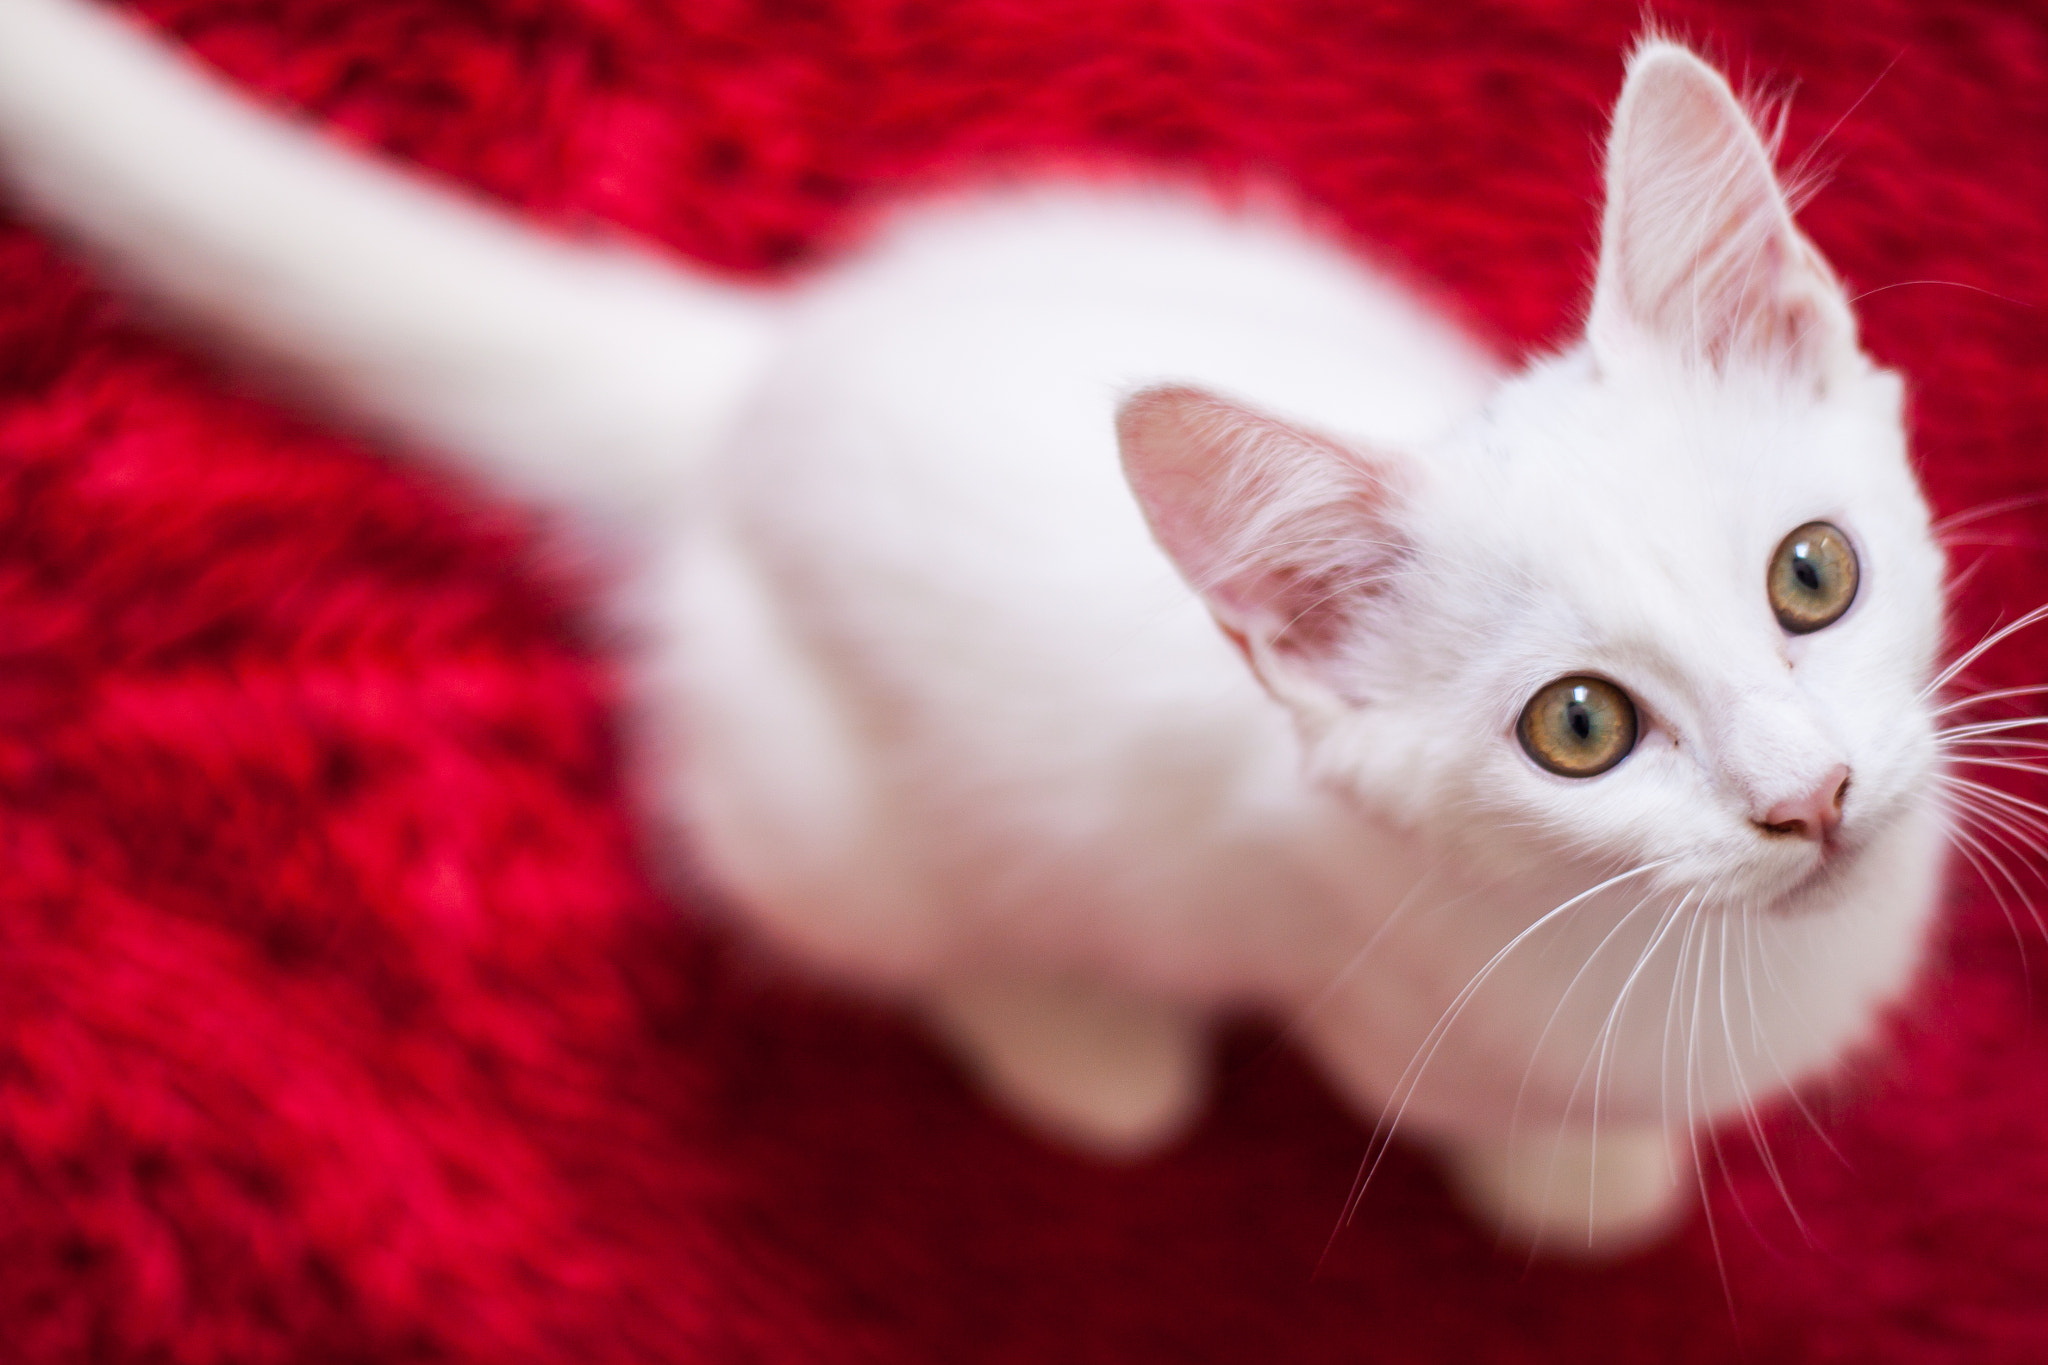 Photograph Cat with red by Gustavo Piazzarollo on 500px